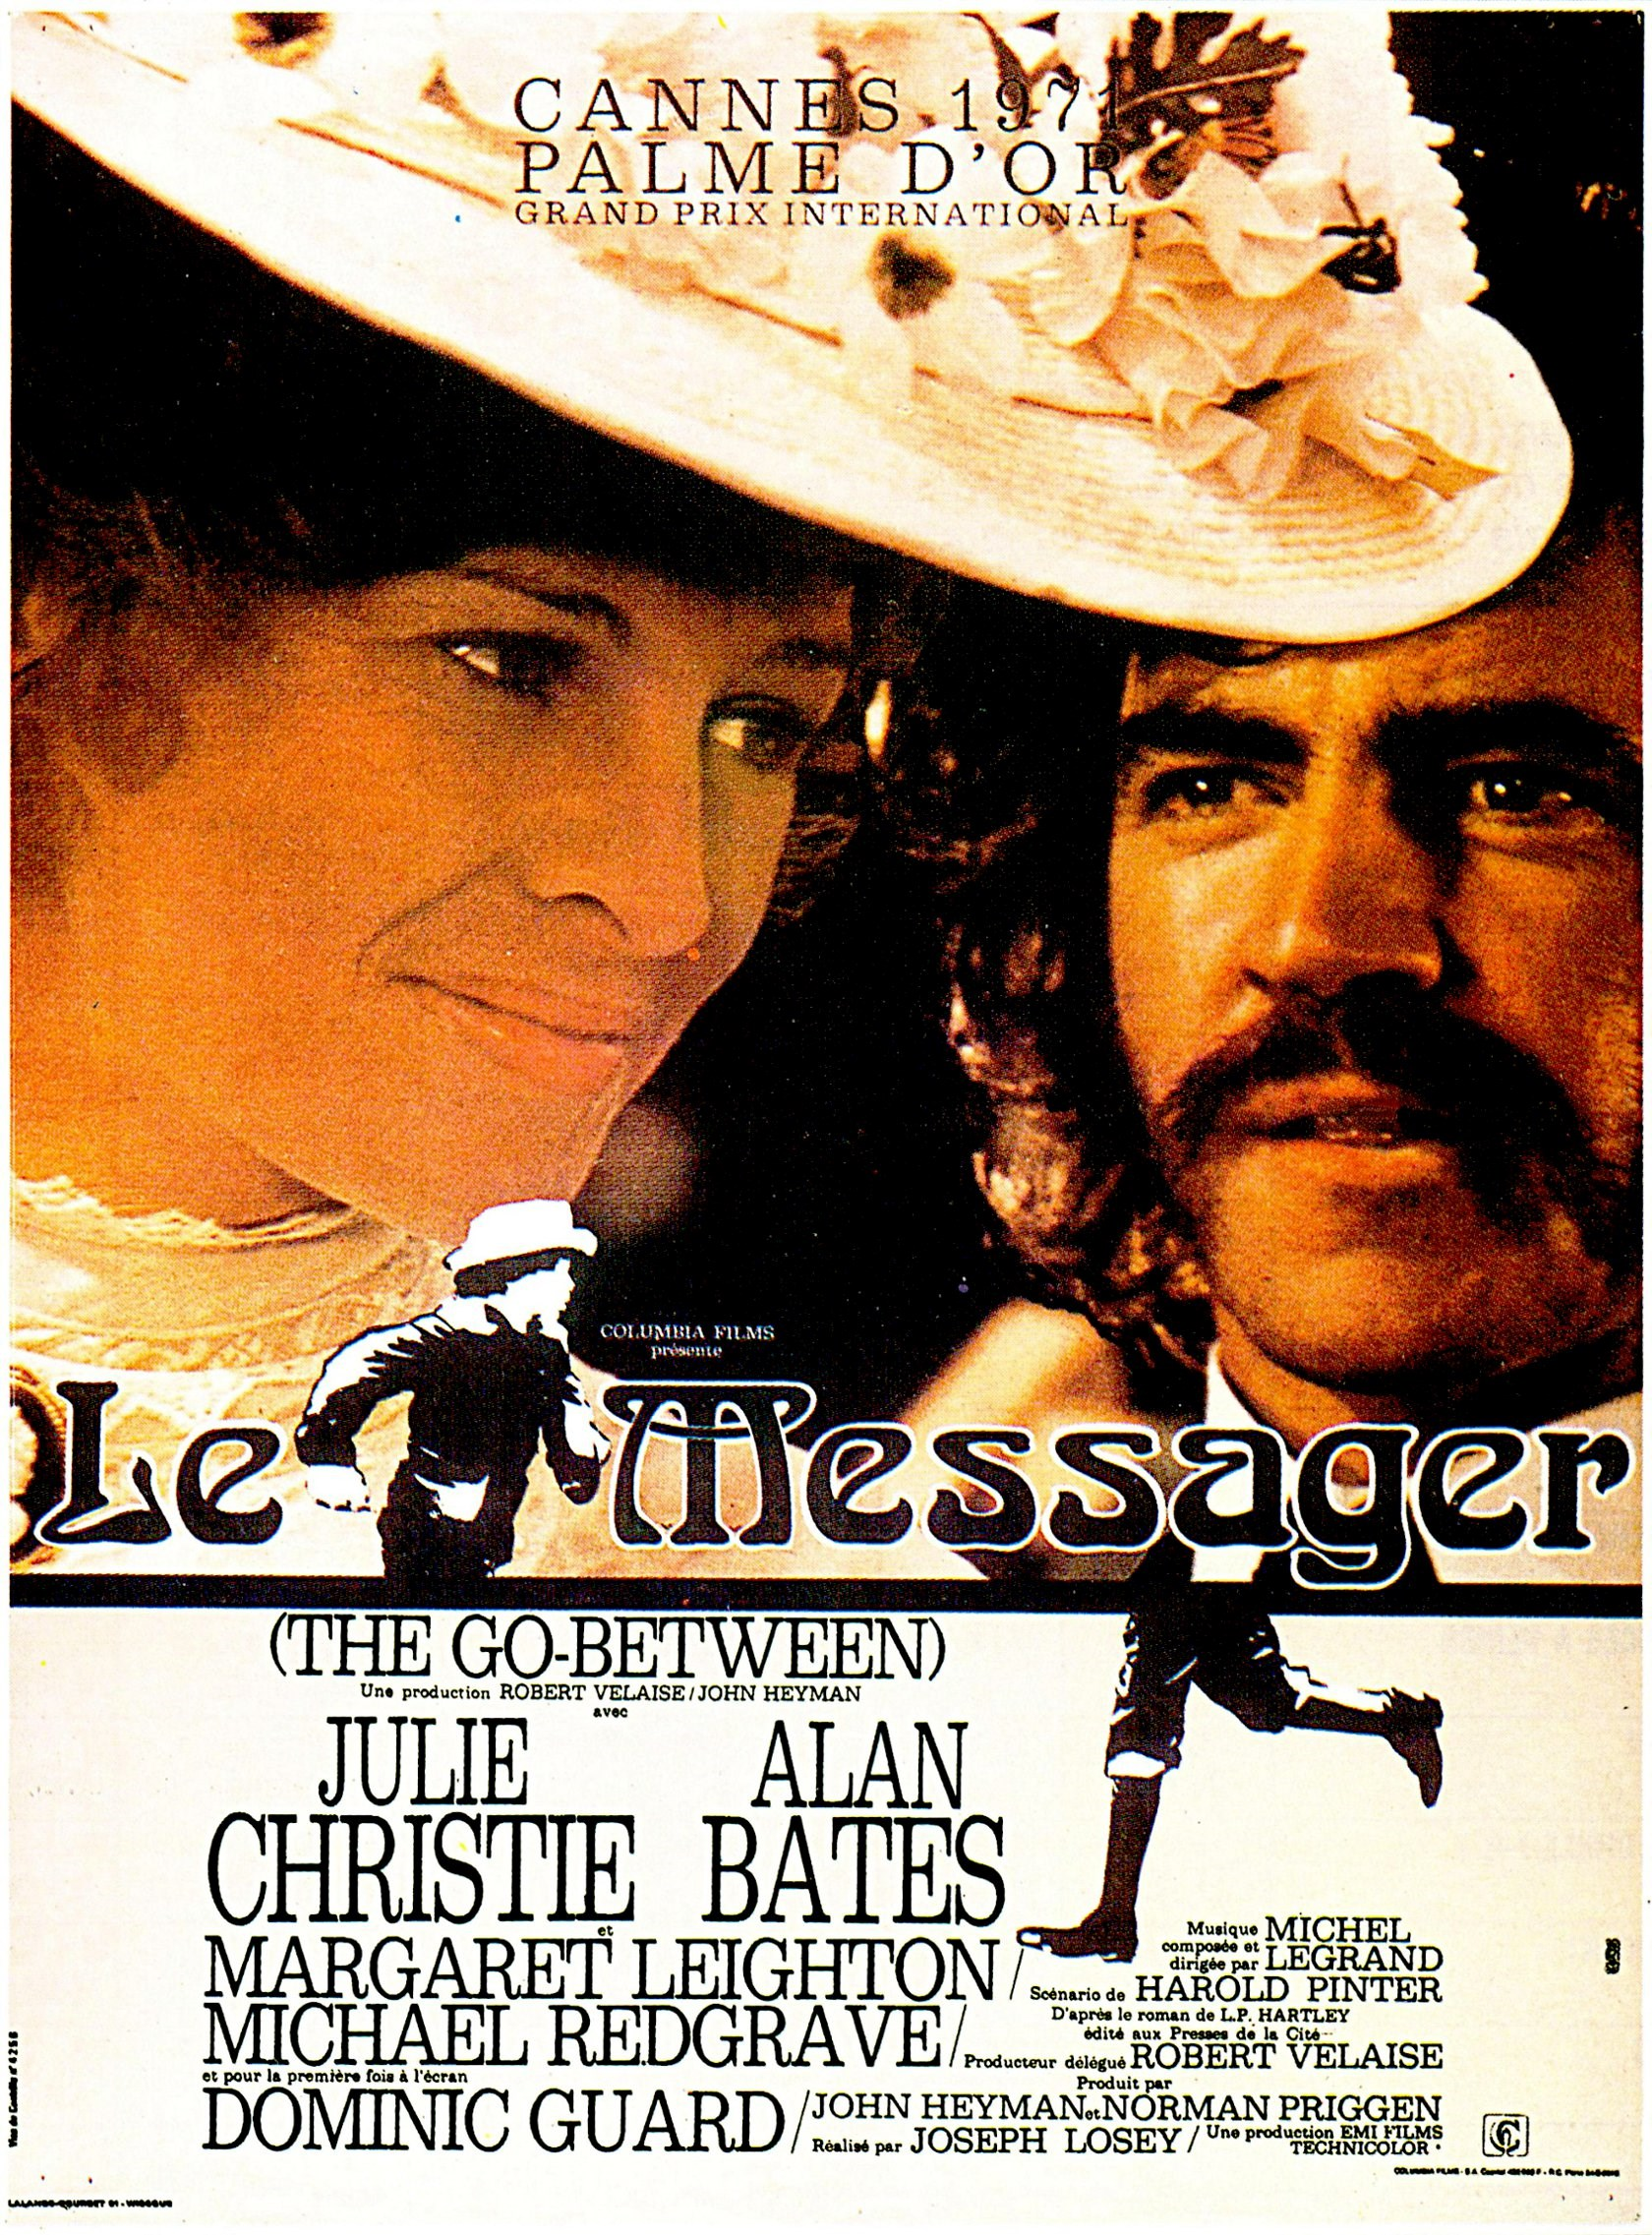 Le Messager (1971)